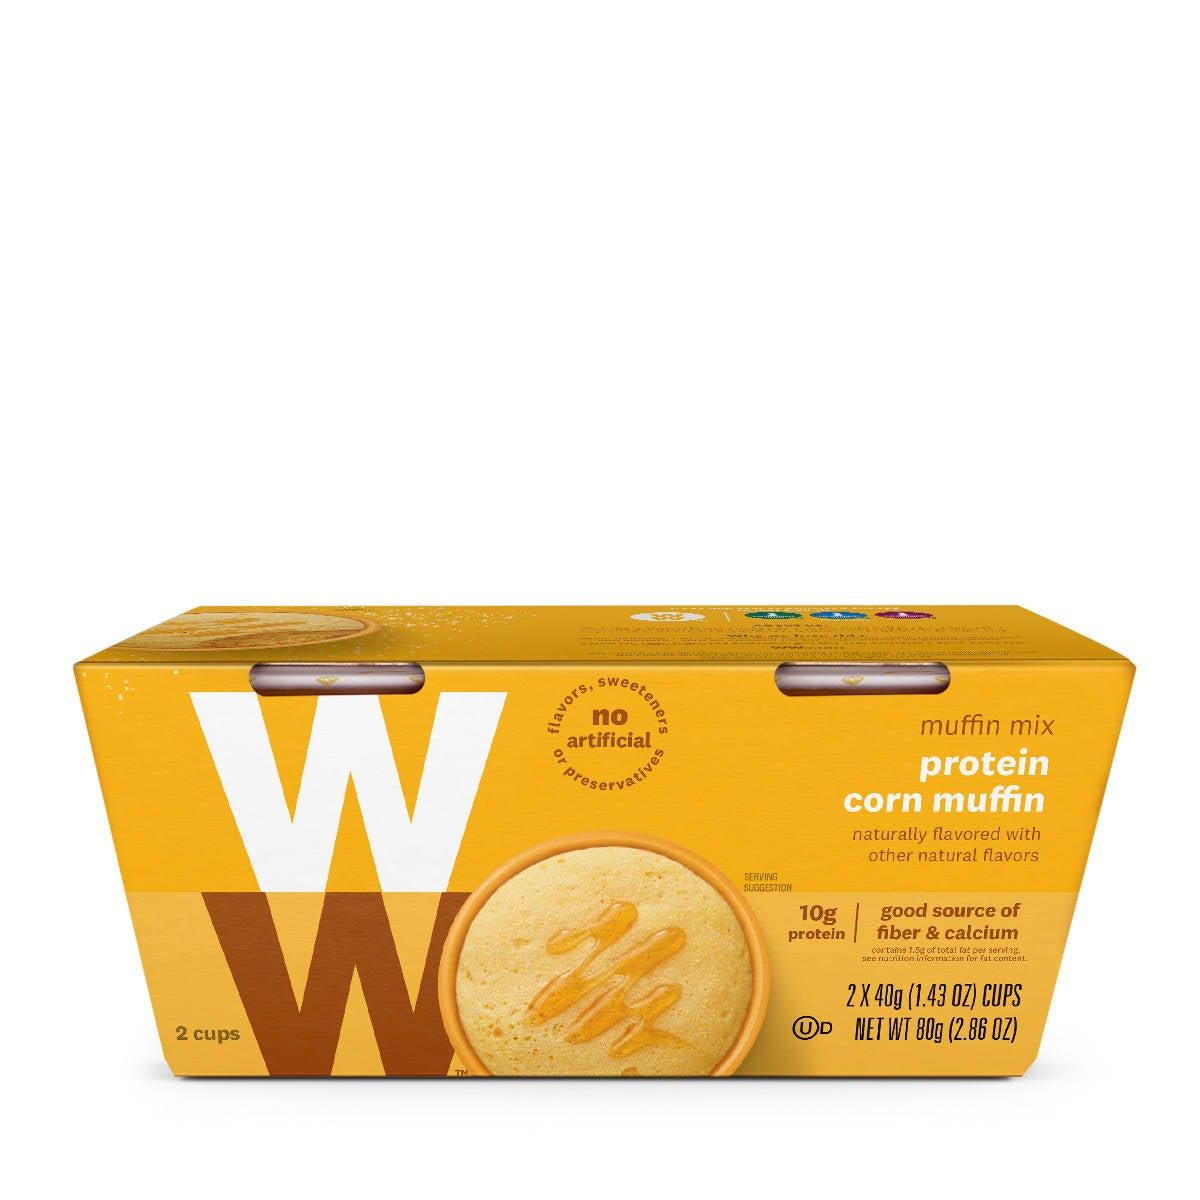 Protein Corn Muffin, front of box, 2 cups, 10 grams of protein, good course of fiber and calcium